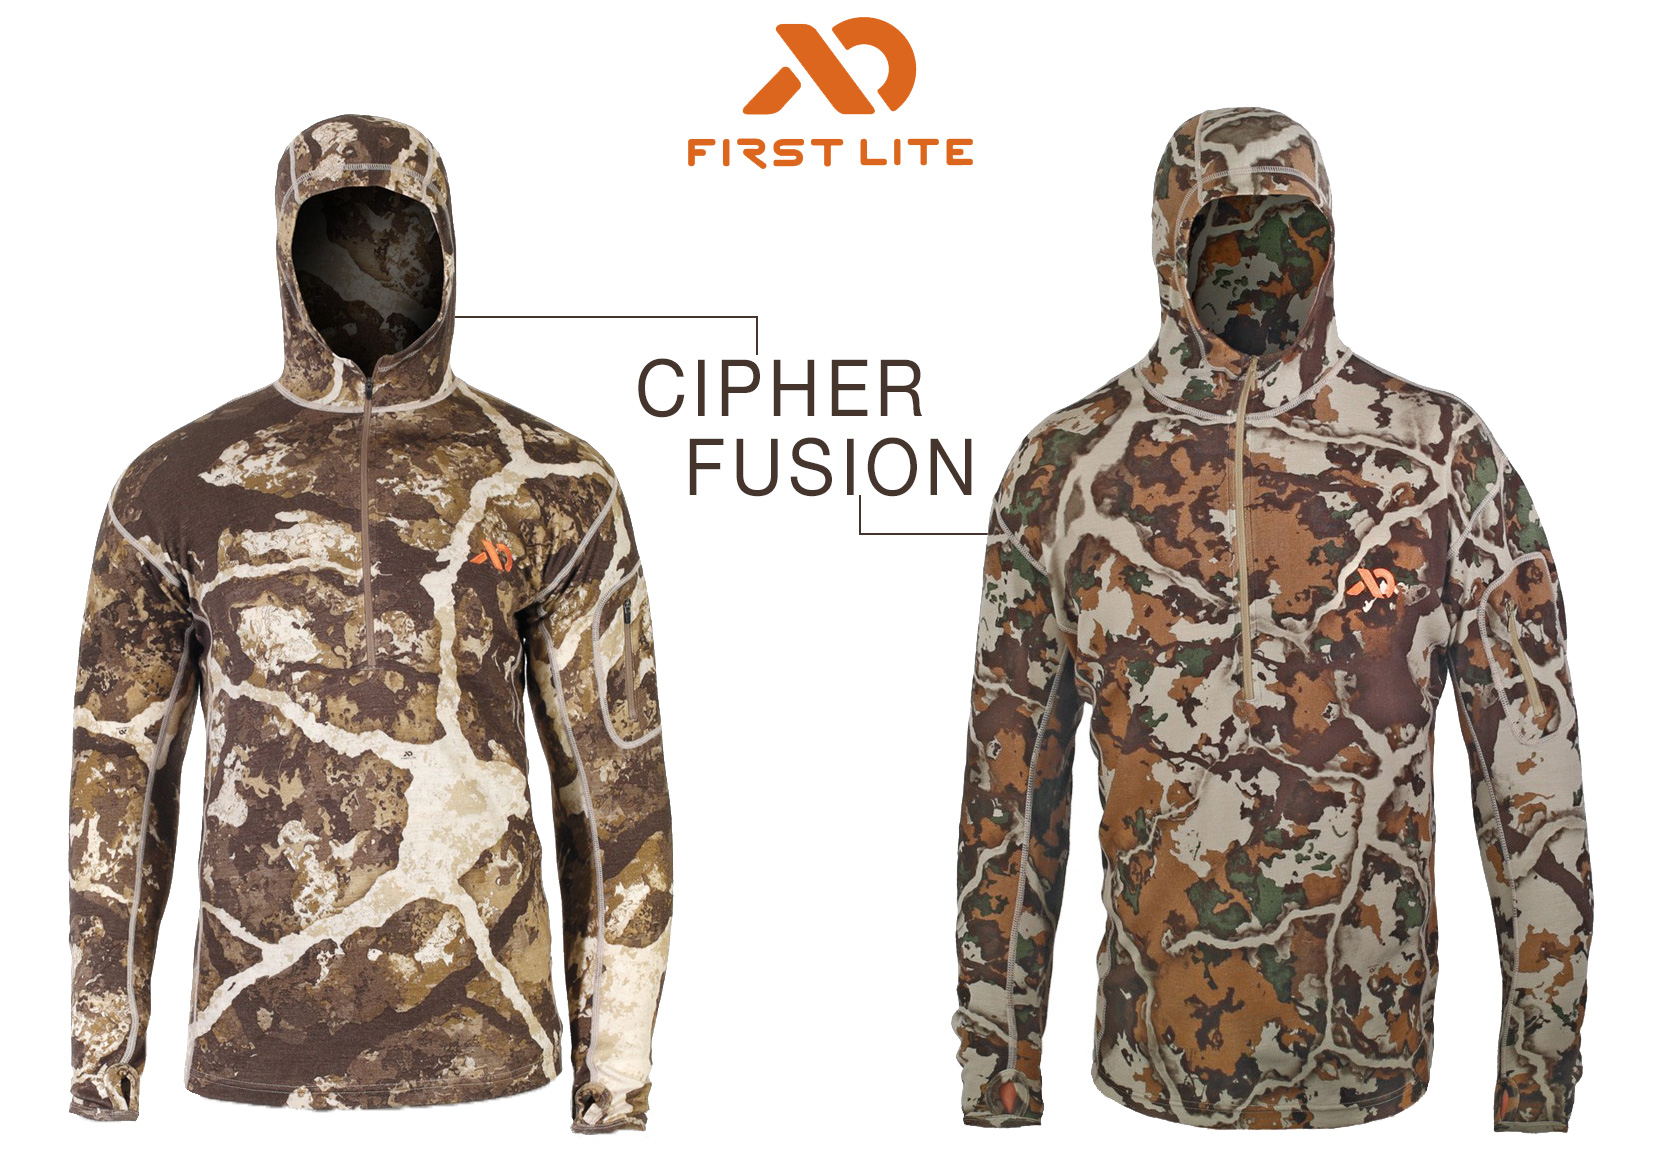 First Lite Cipher Camo  New for 2017  BlackOvis Community